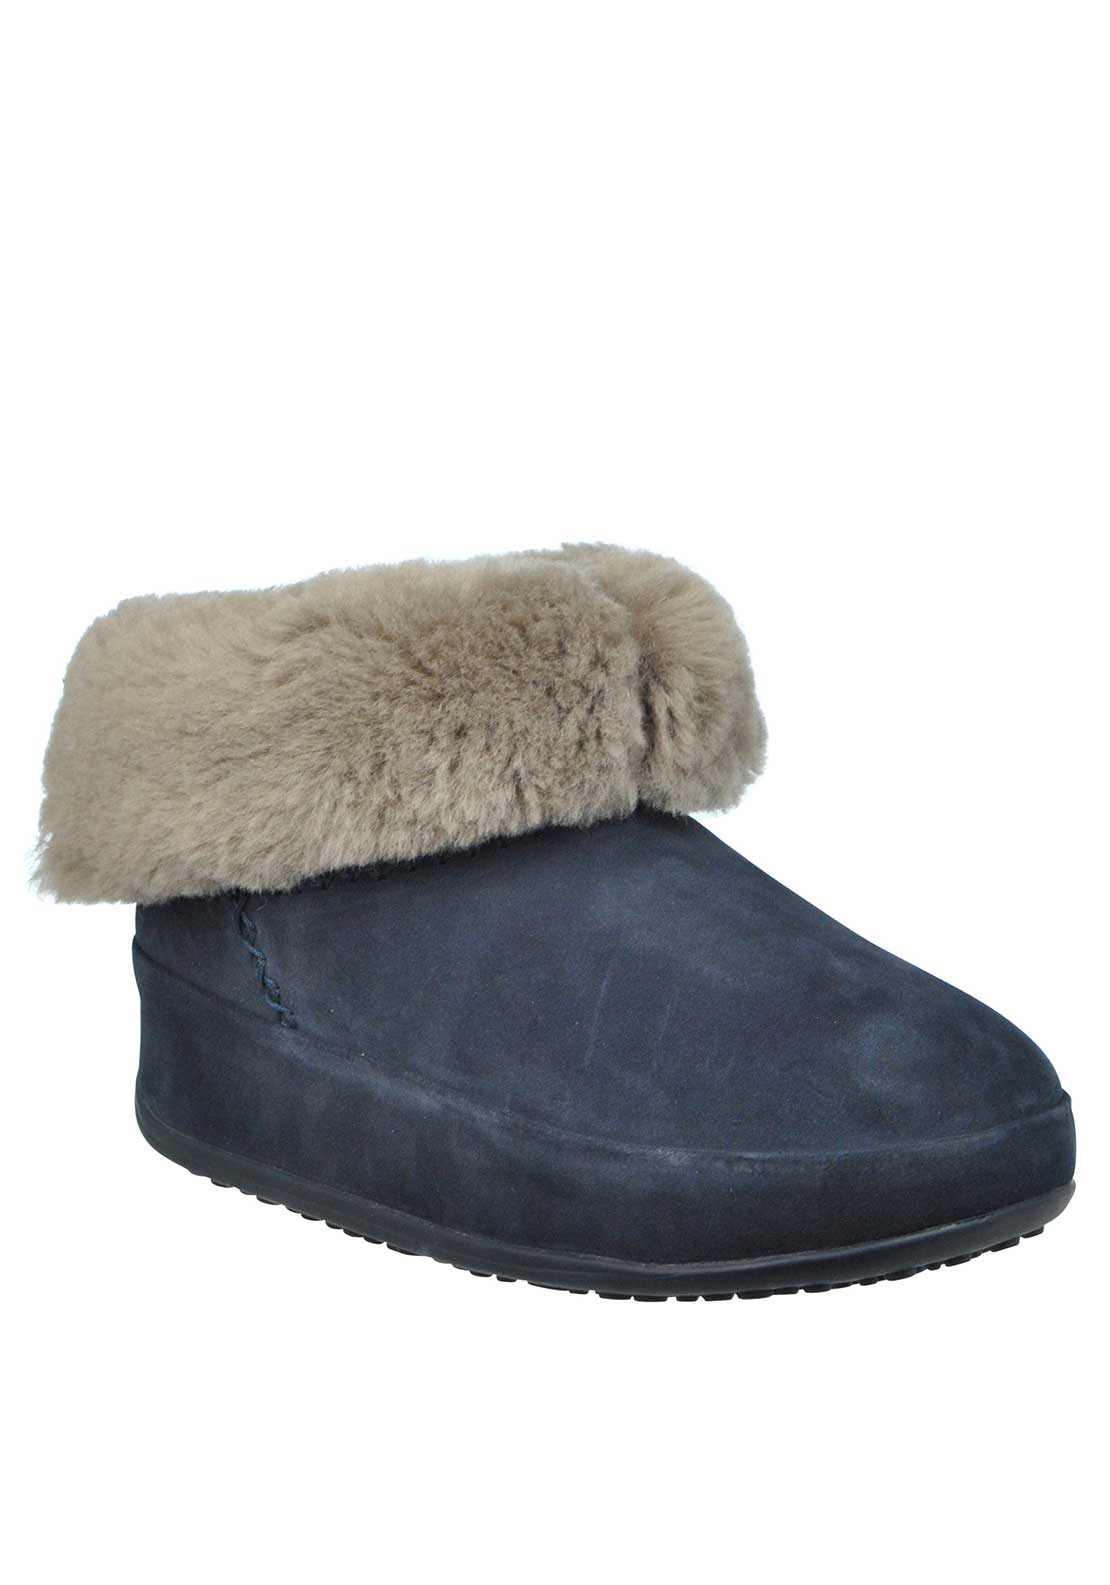 Fit Flop™ Mukluk™ Suede Shorty Boots, Navy